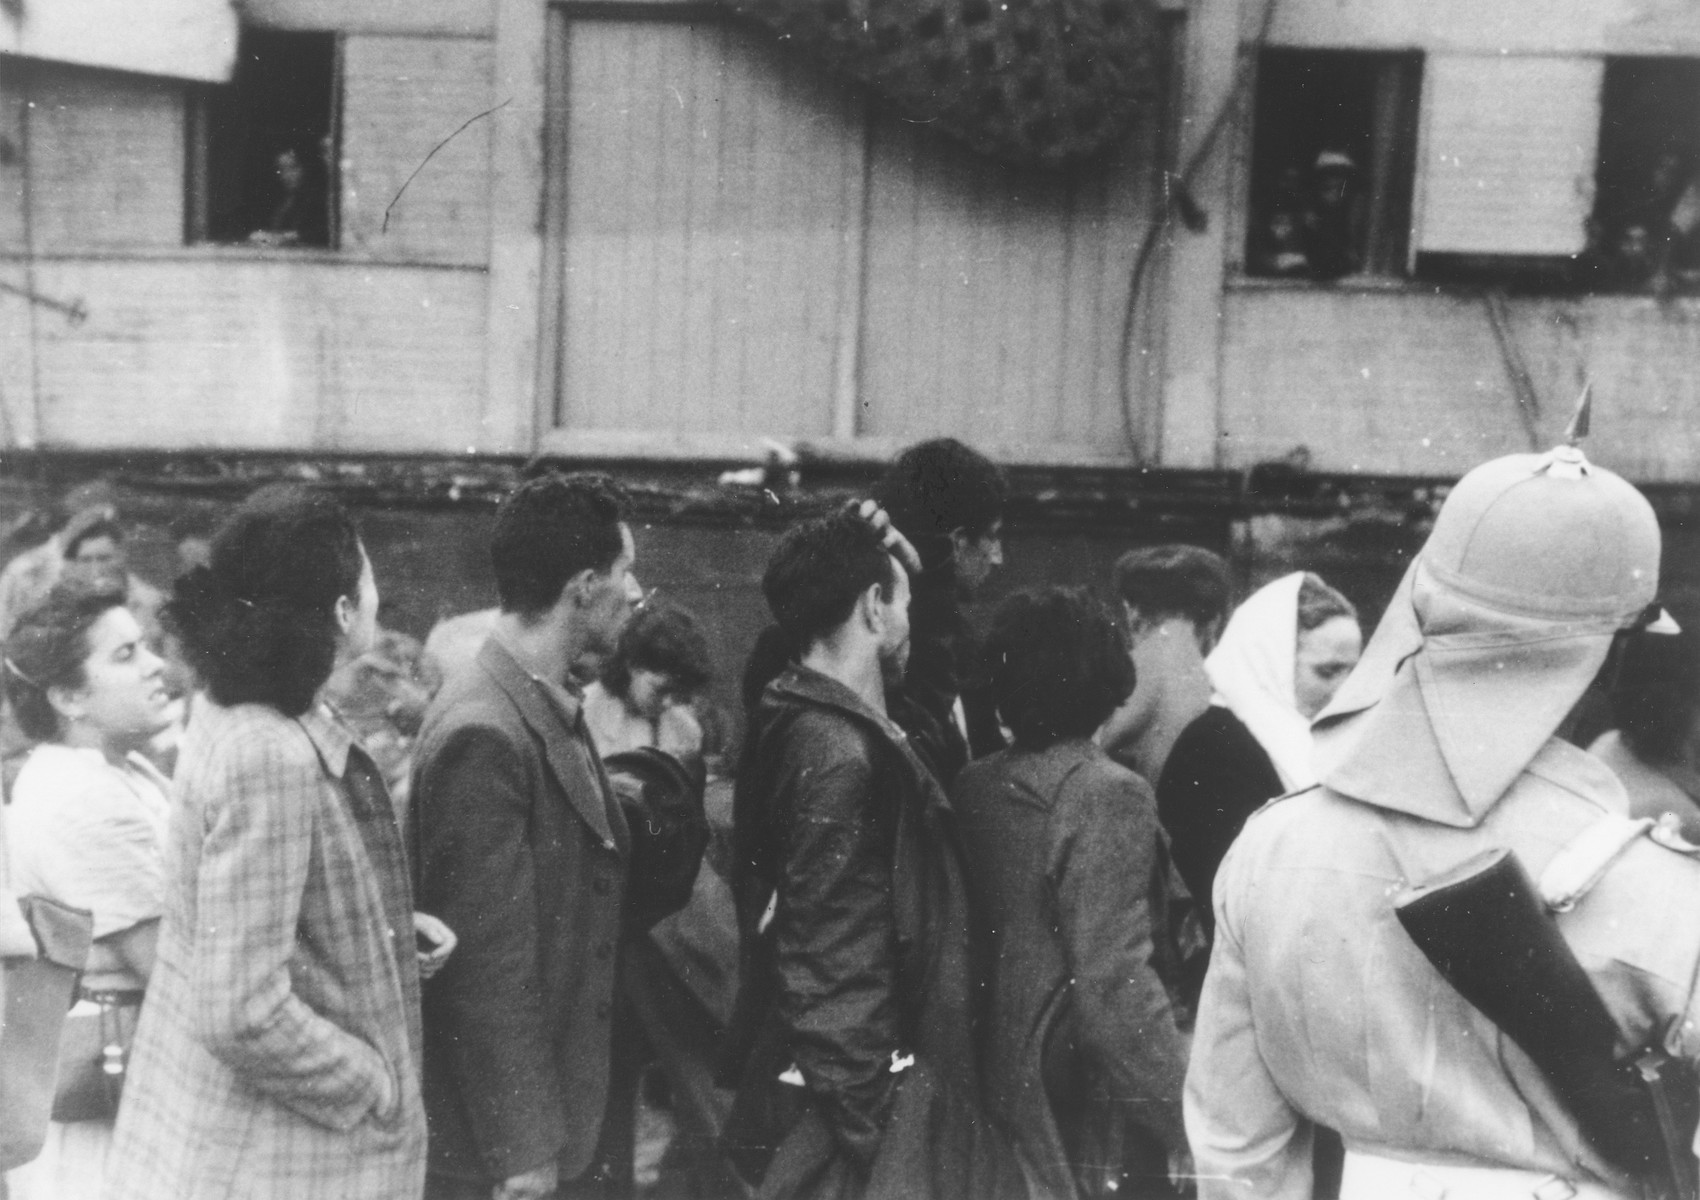 Passengers from the illegal immigrant ship, Exodus 1947, wait in line on the pier in Haifa to have their papers checked, before being transferred to British ships that will return them to Europe.